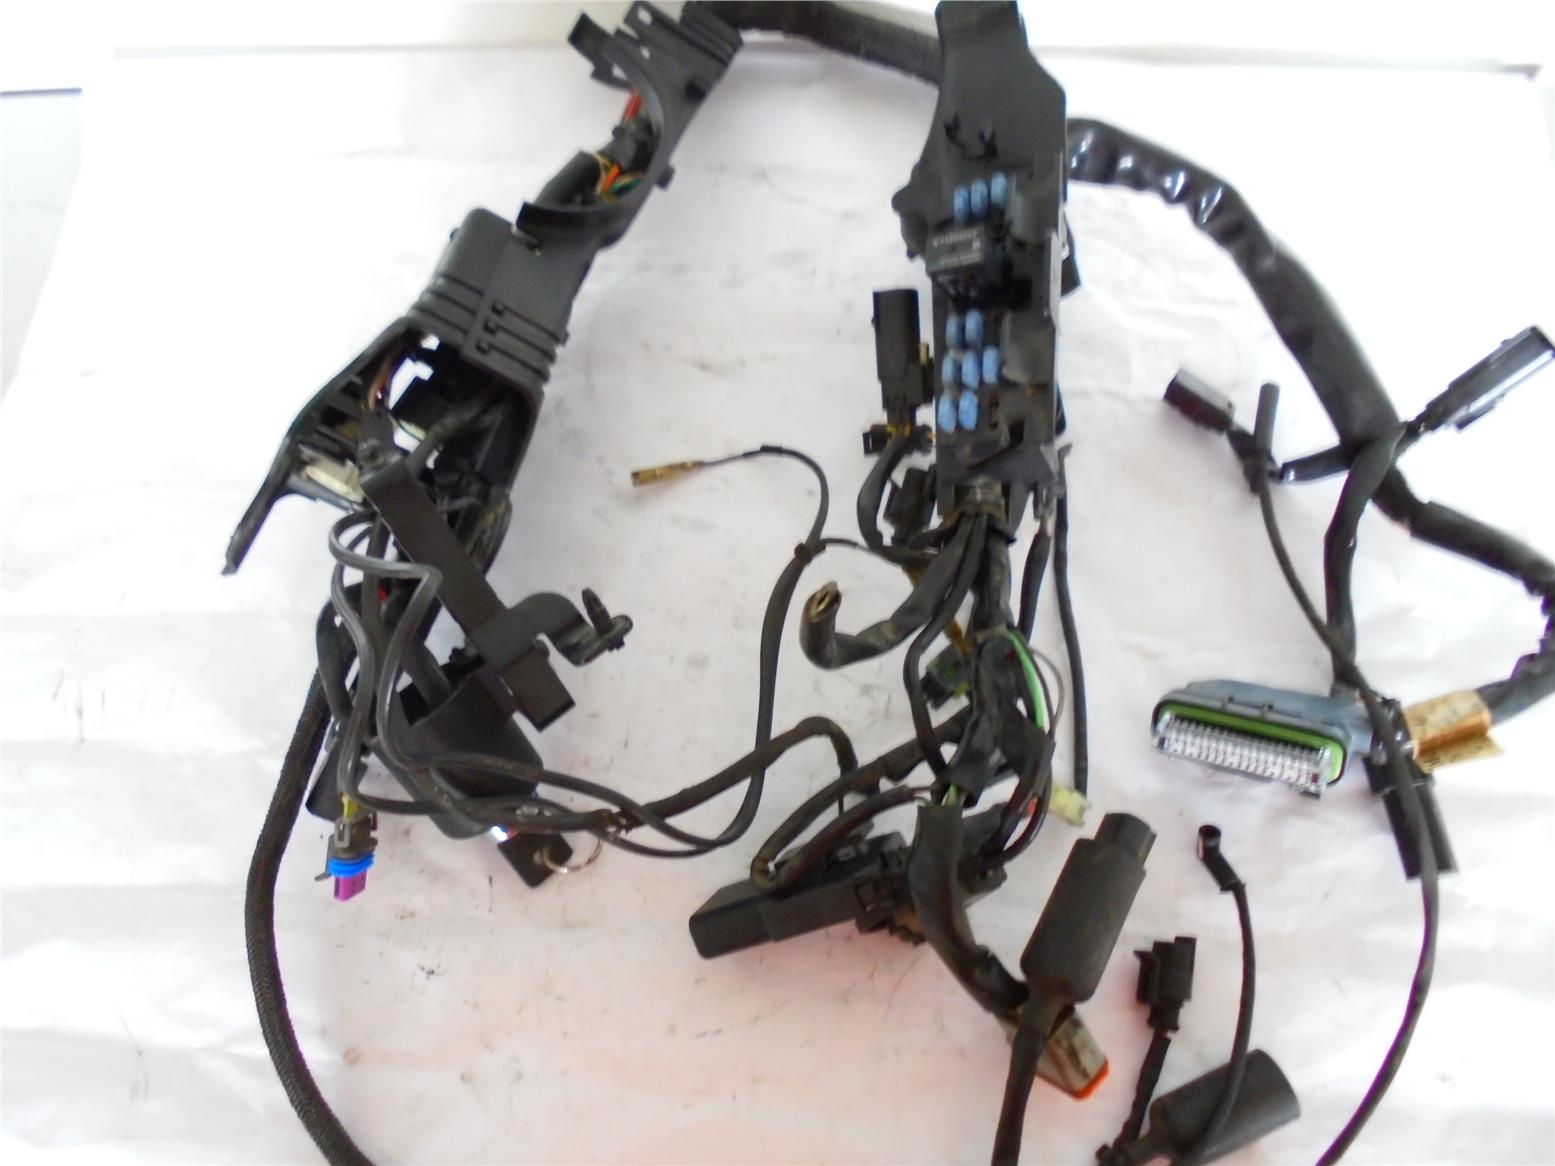 Wiring Harness For Harley Davidson - Wiring Diagram & Cable ... on